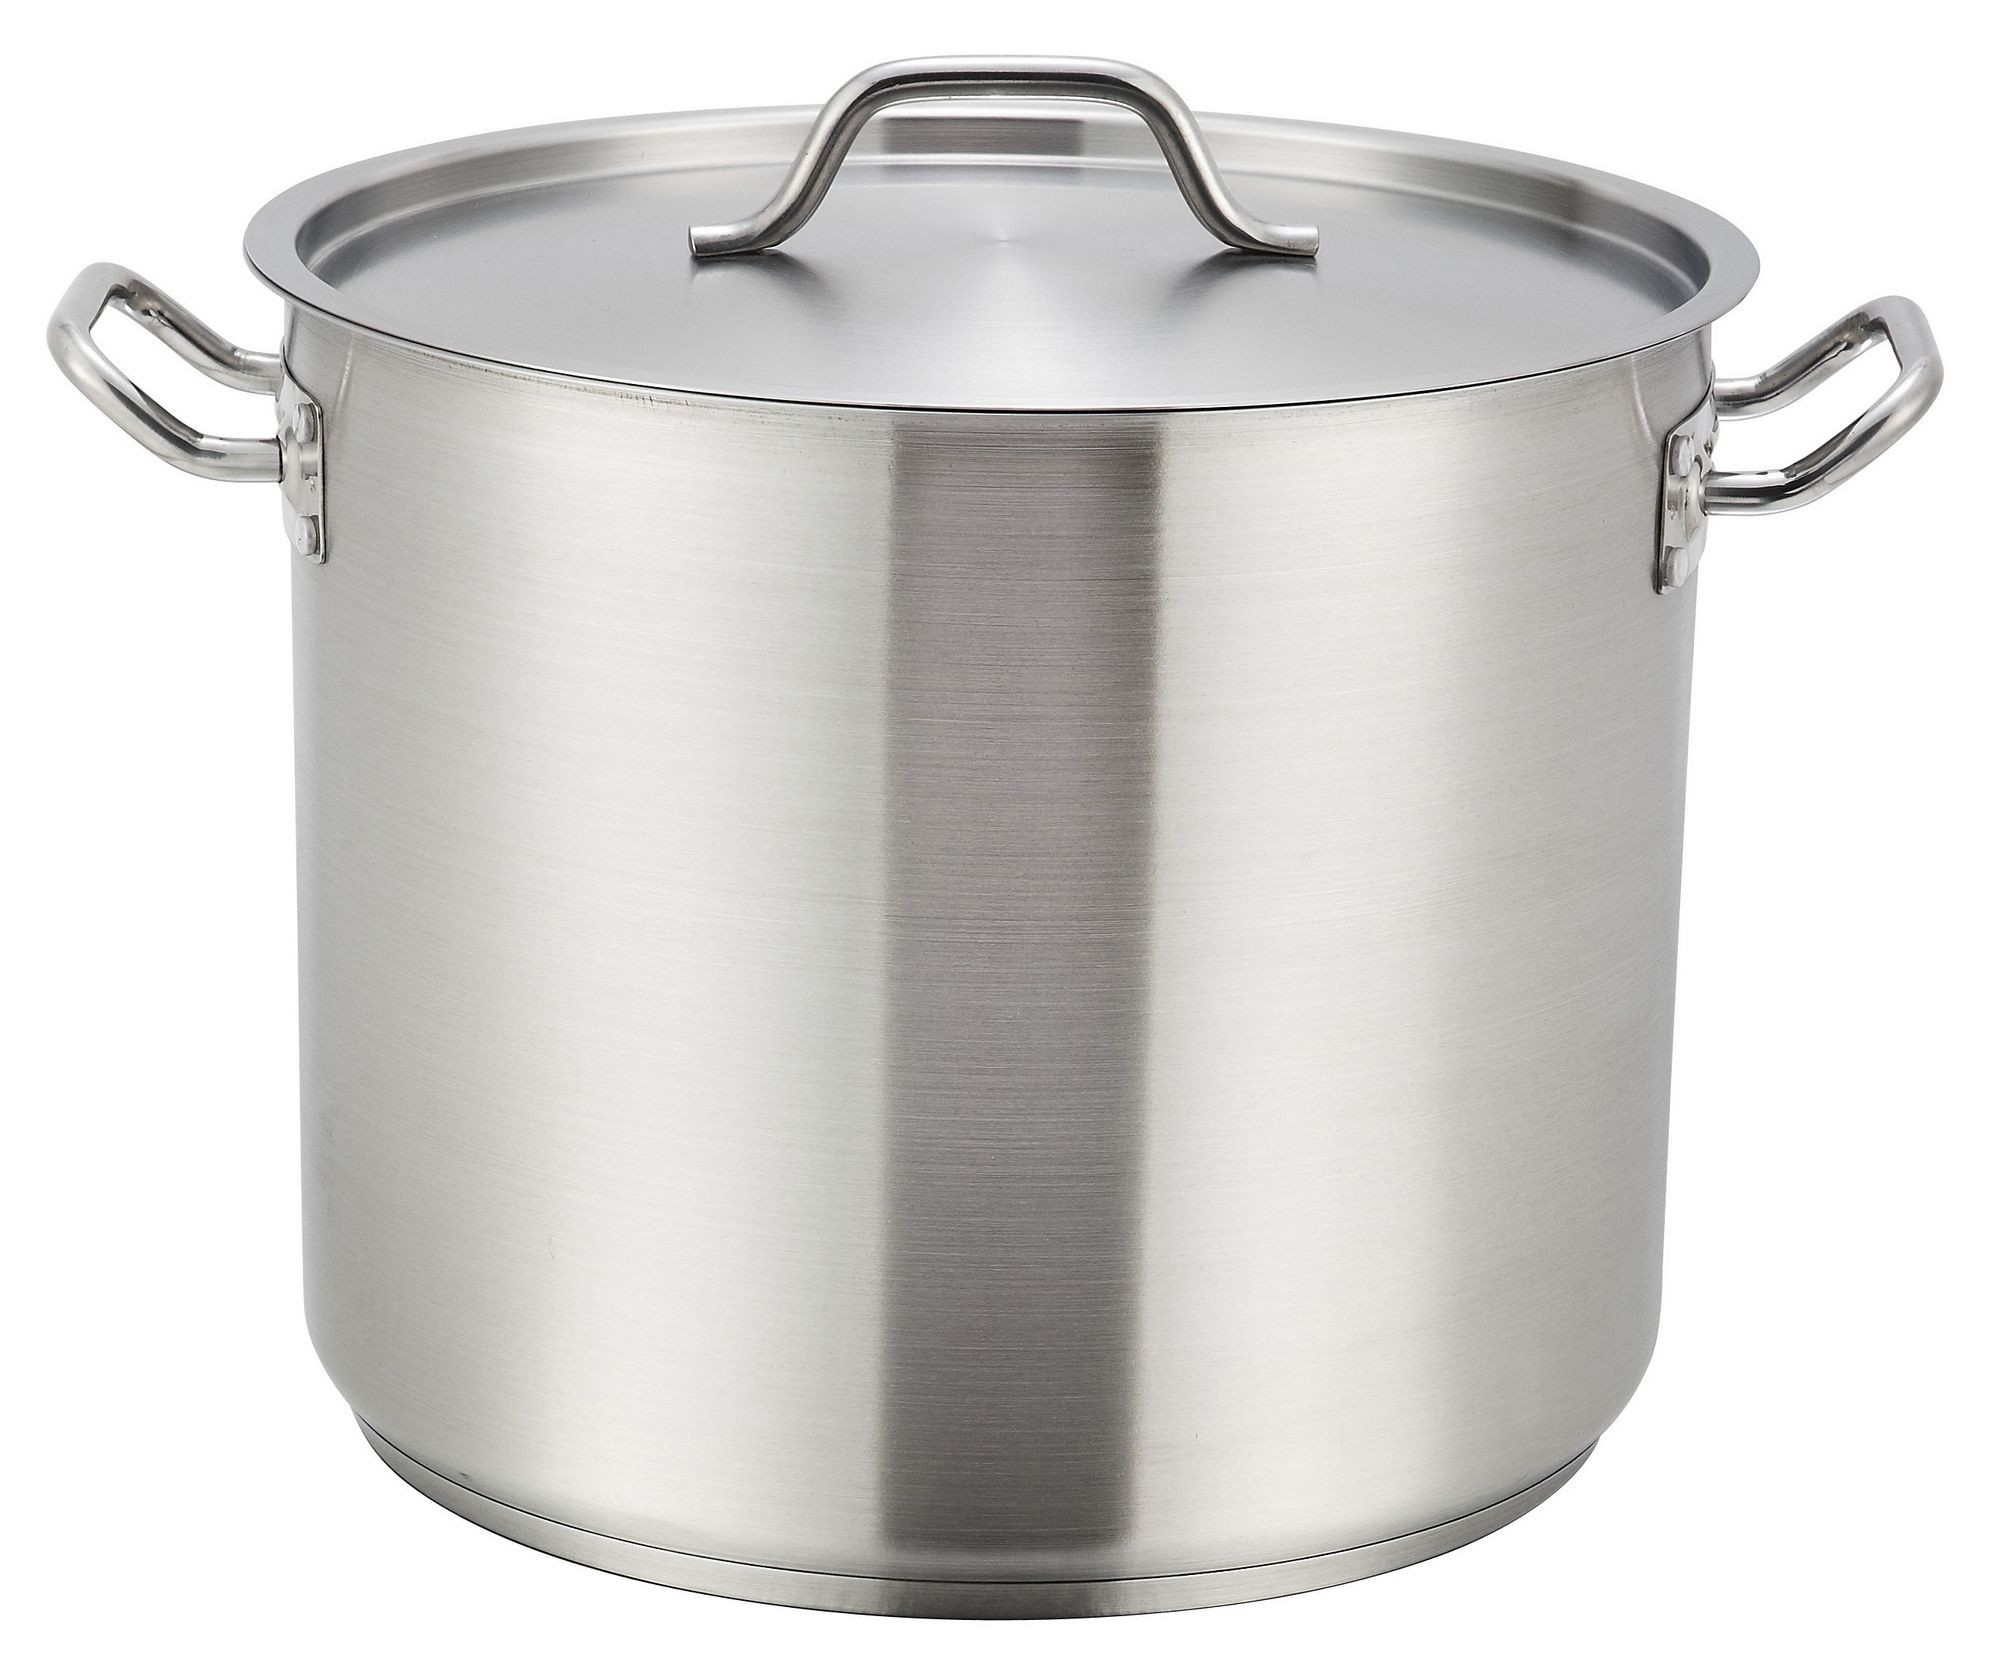 Stainless Steel 16-Qt Stock Pot